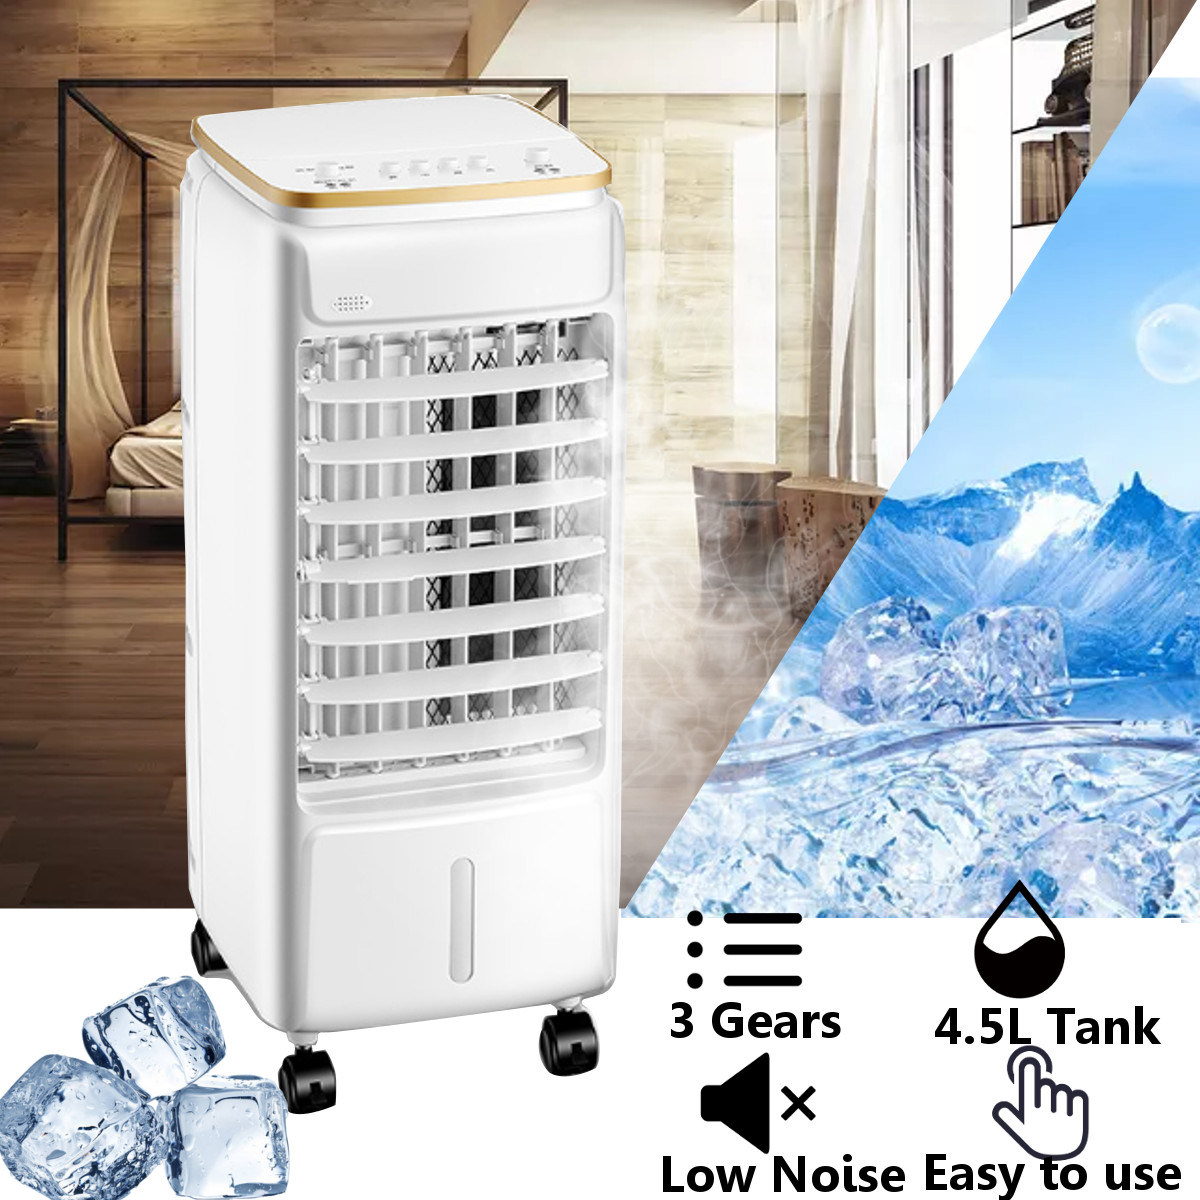 3 Gear Portable Movable Air Conditioning Cooler Fan Units Humidifier Home Office